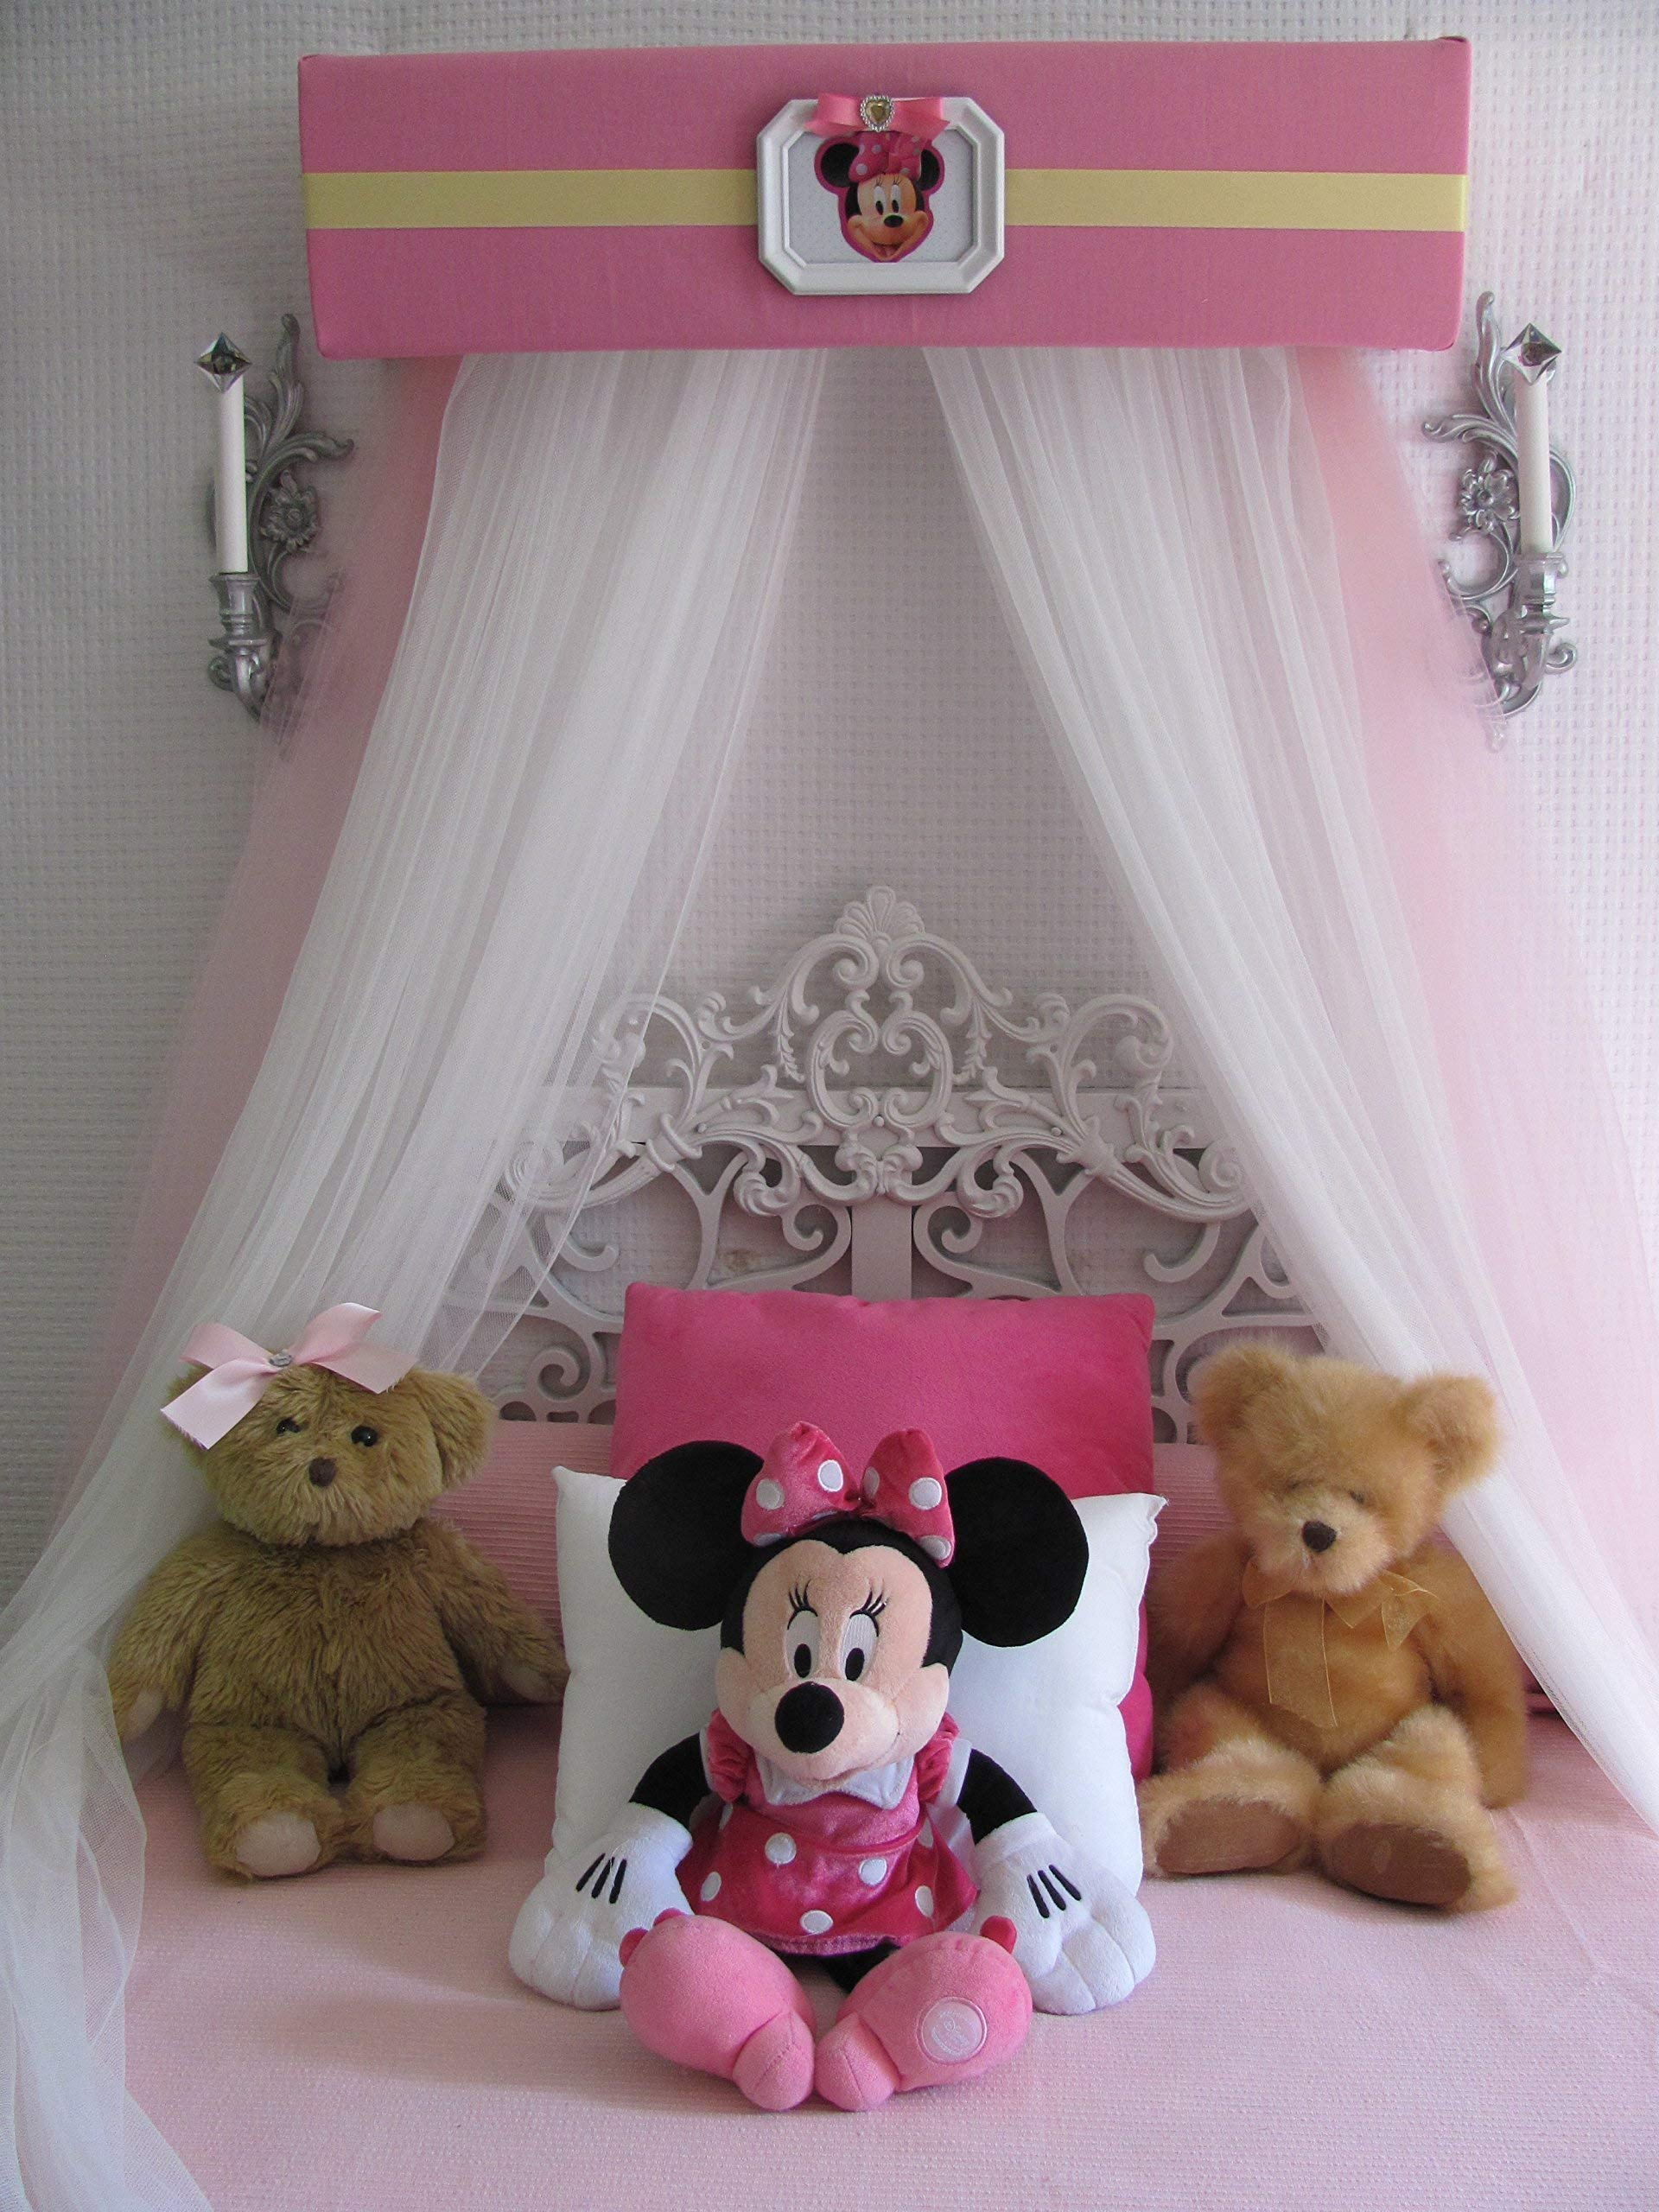 Disney Minnie Mouse Crib canopy cornice BED teester FULL Twin 30 inch Pink nursery So Zoey Boutique by So Zoey Boutique (Image #1)